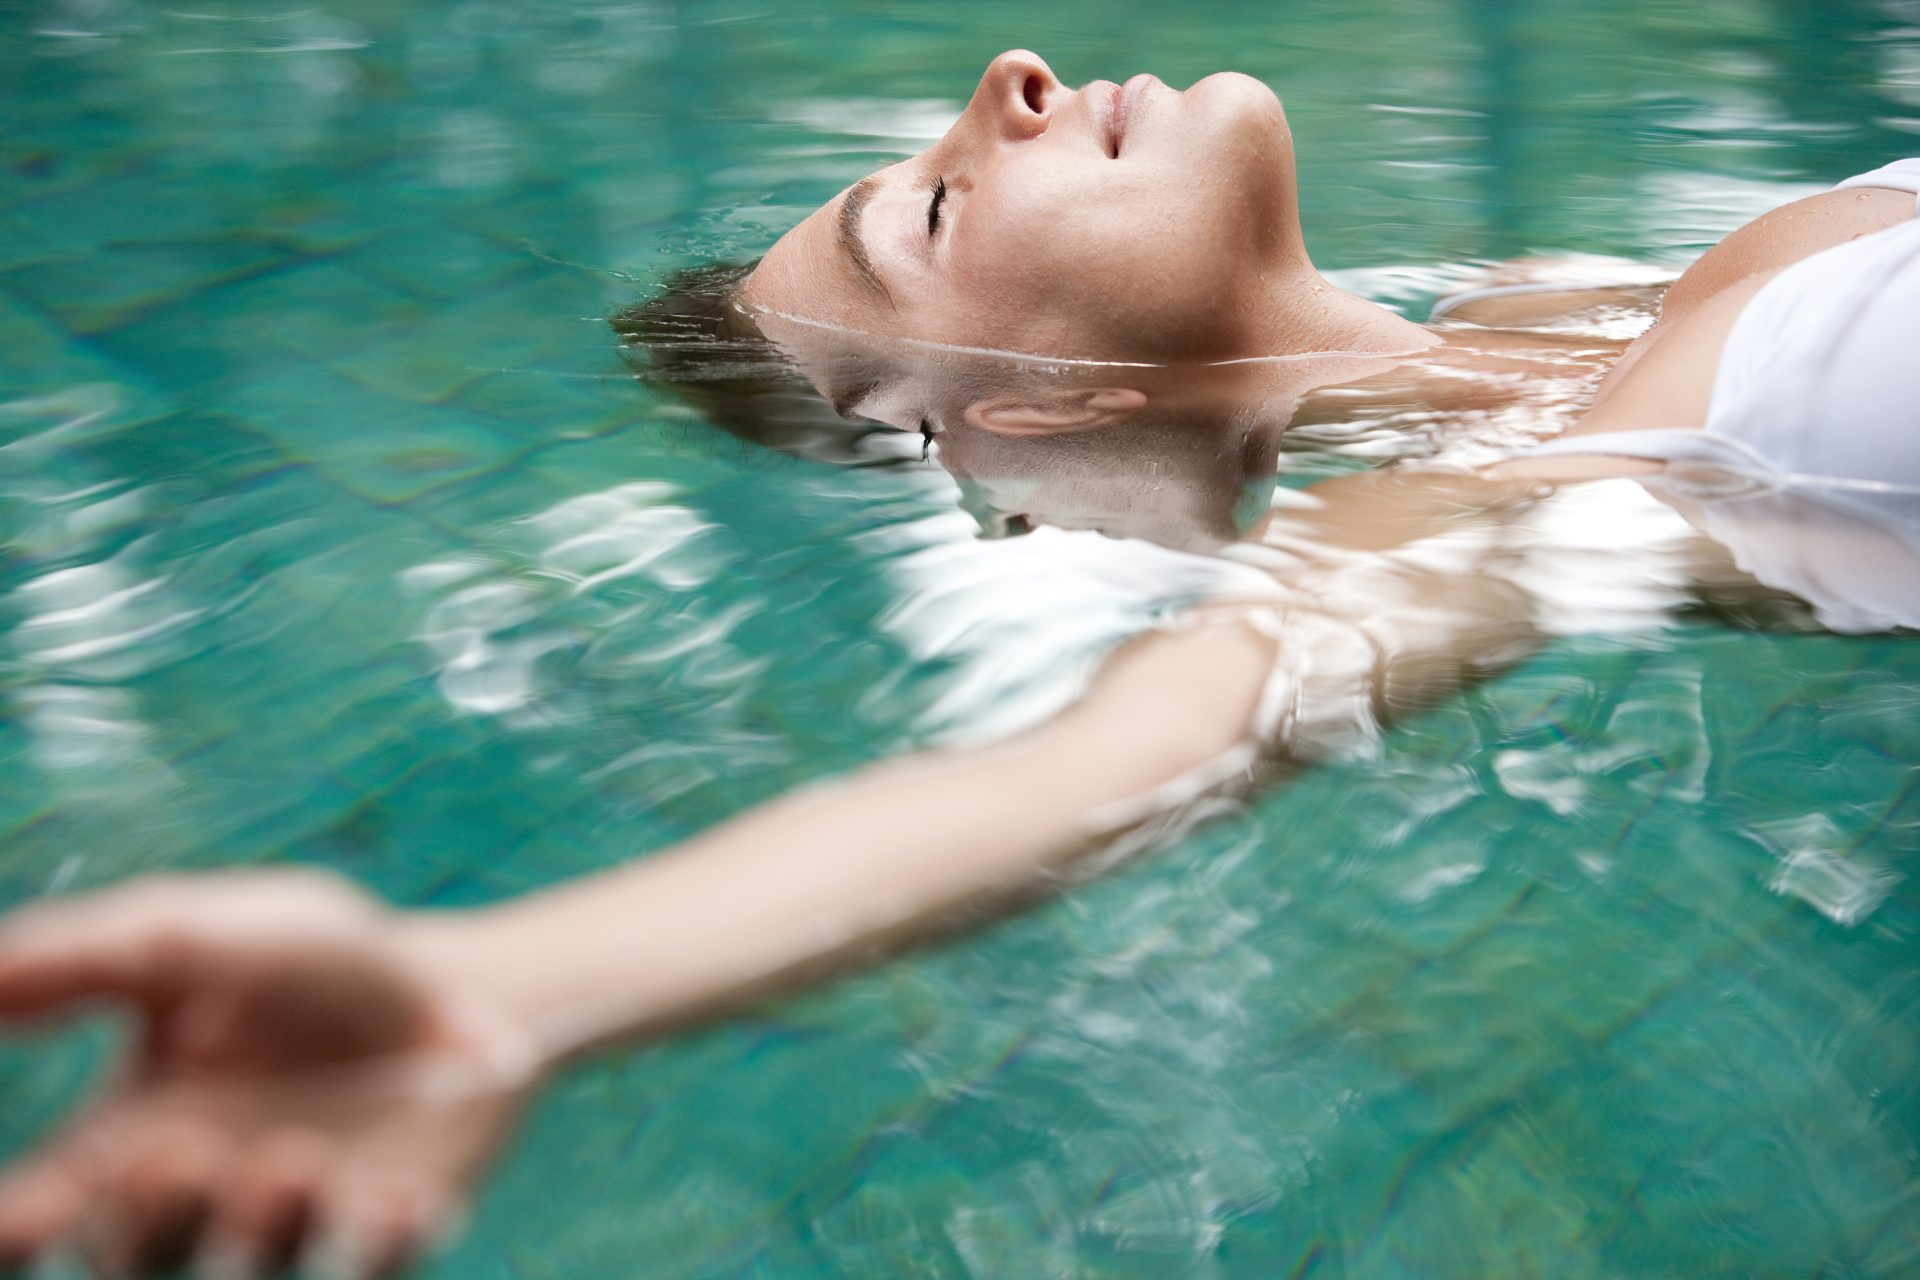 The History of Floatation Therapy